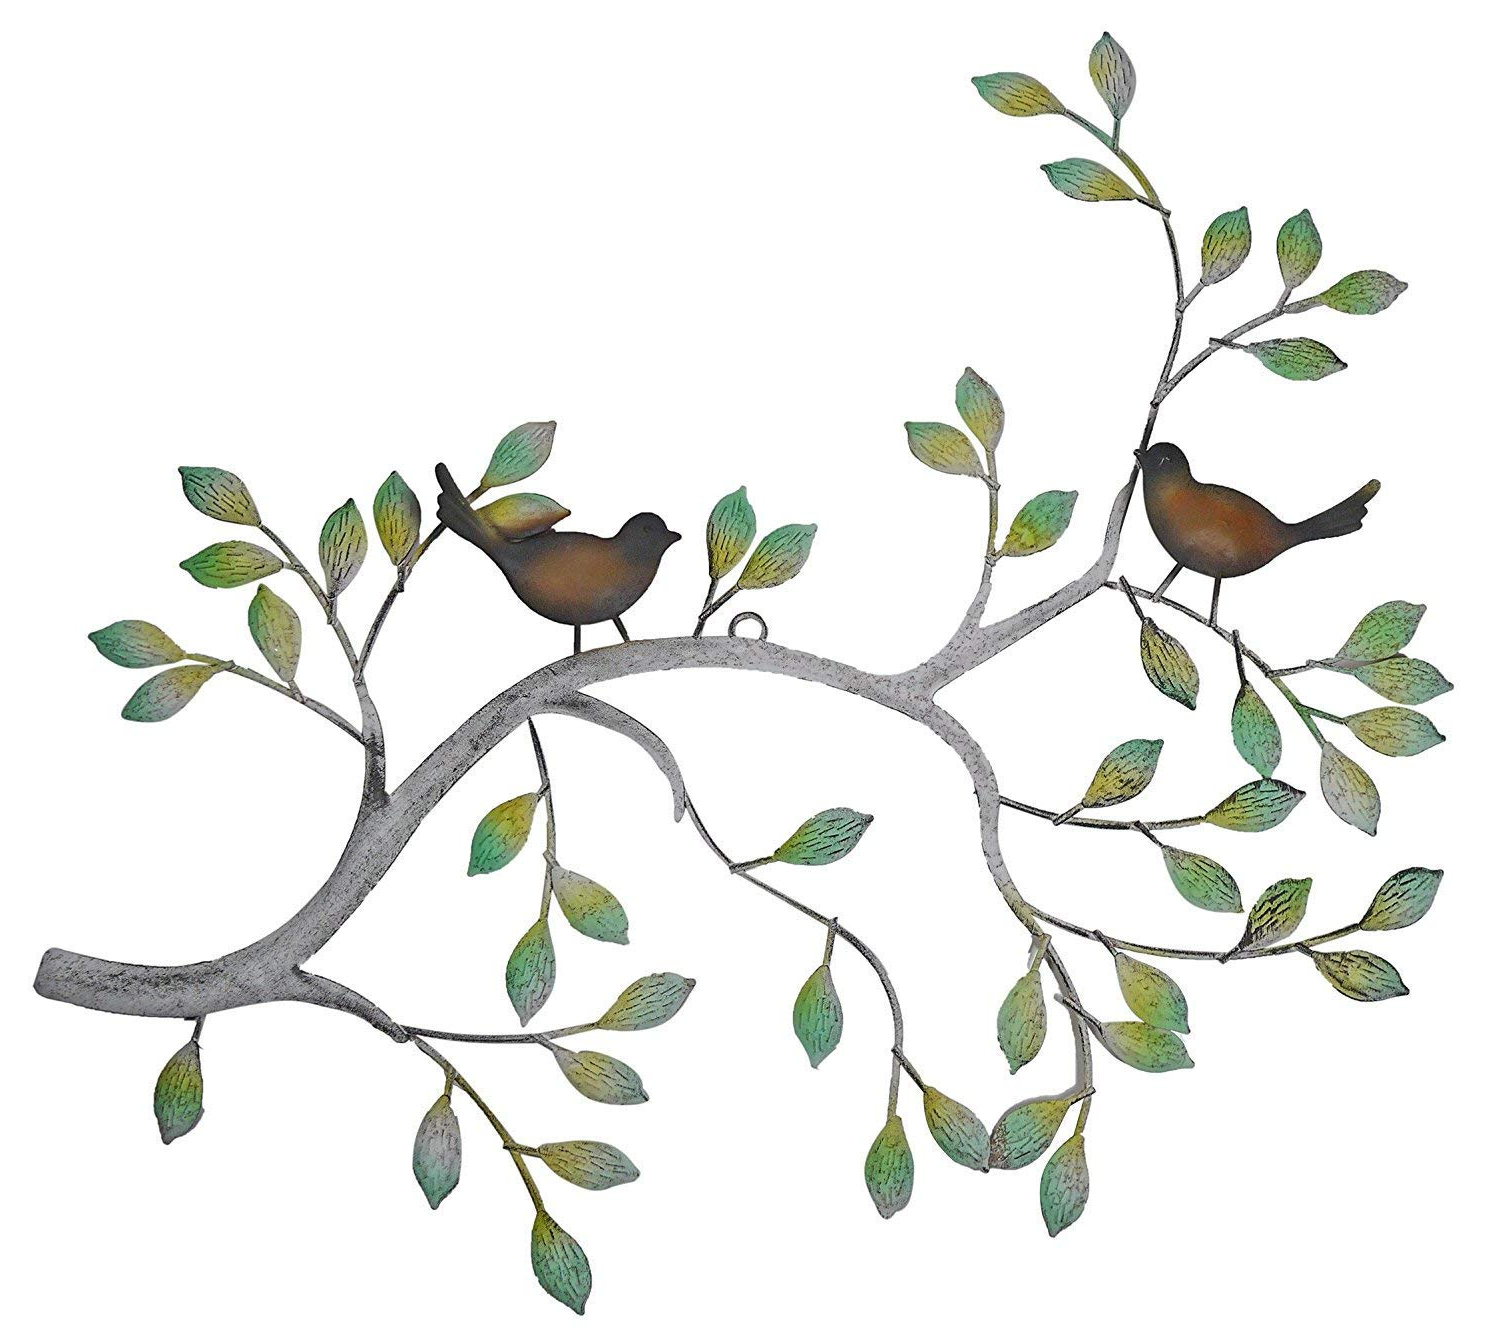 Birds On A Branch Wall Decor Throughout Best And Newest Amazon: 24 In Branches W/birds Decorative Metal Wall Decor (Gallery 20 of 20)